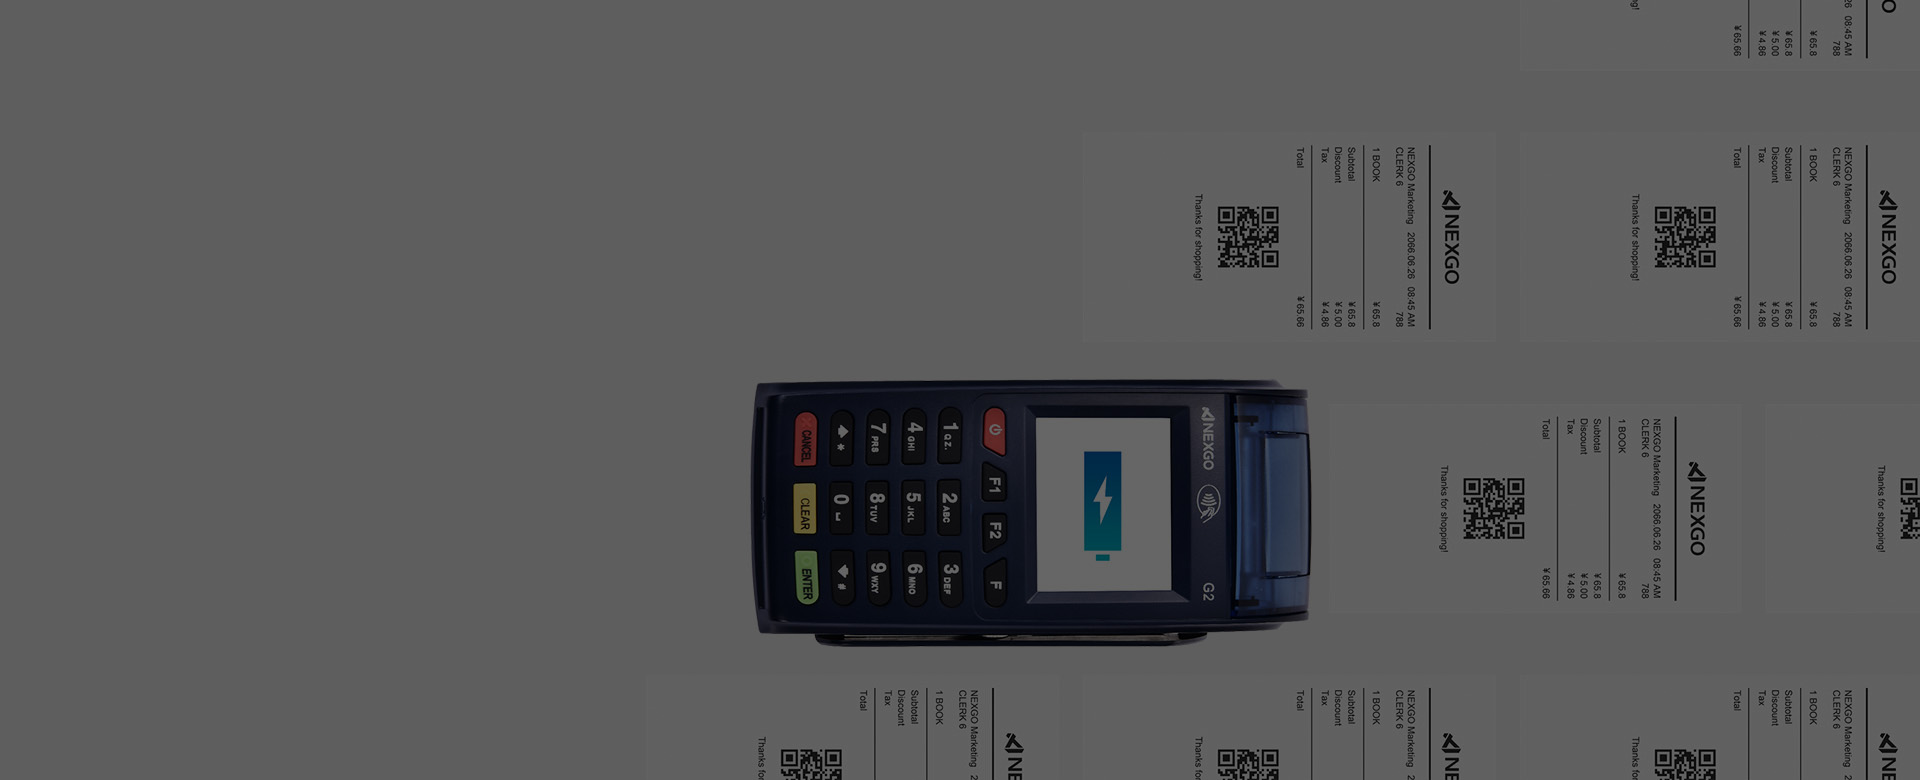 power-efficient NEXGO Portable POS Terminal G2